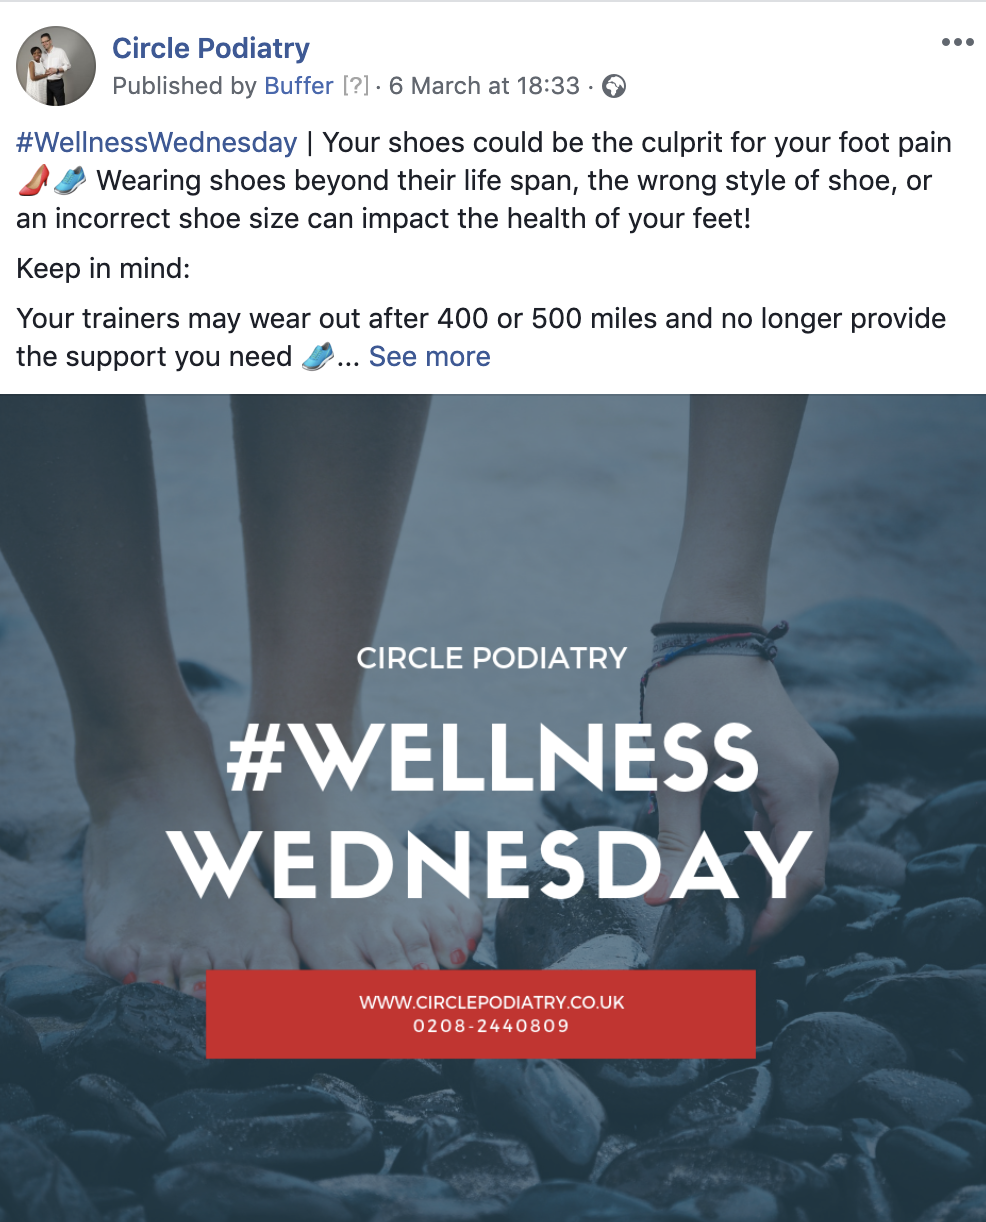 #WellnessWednesday